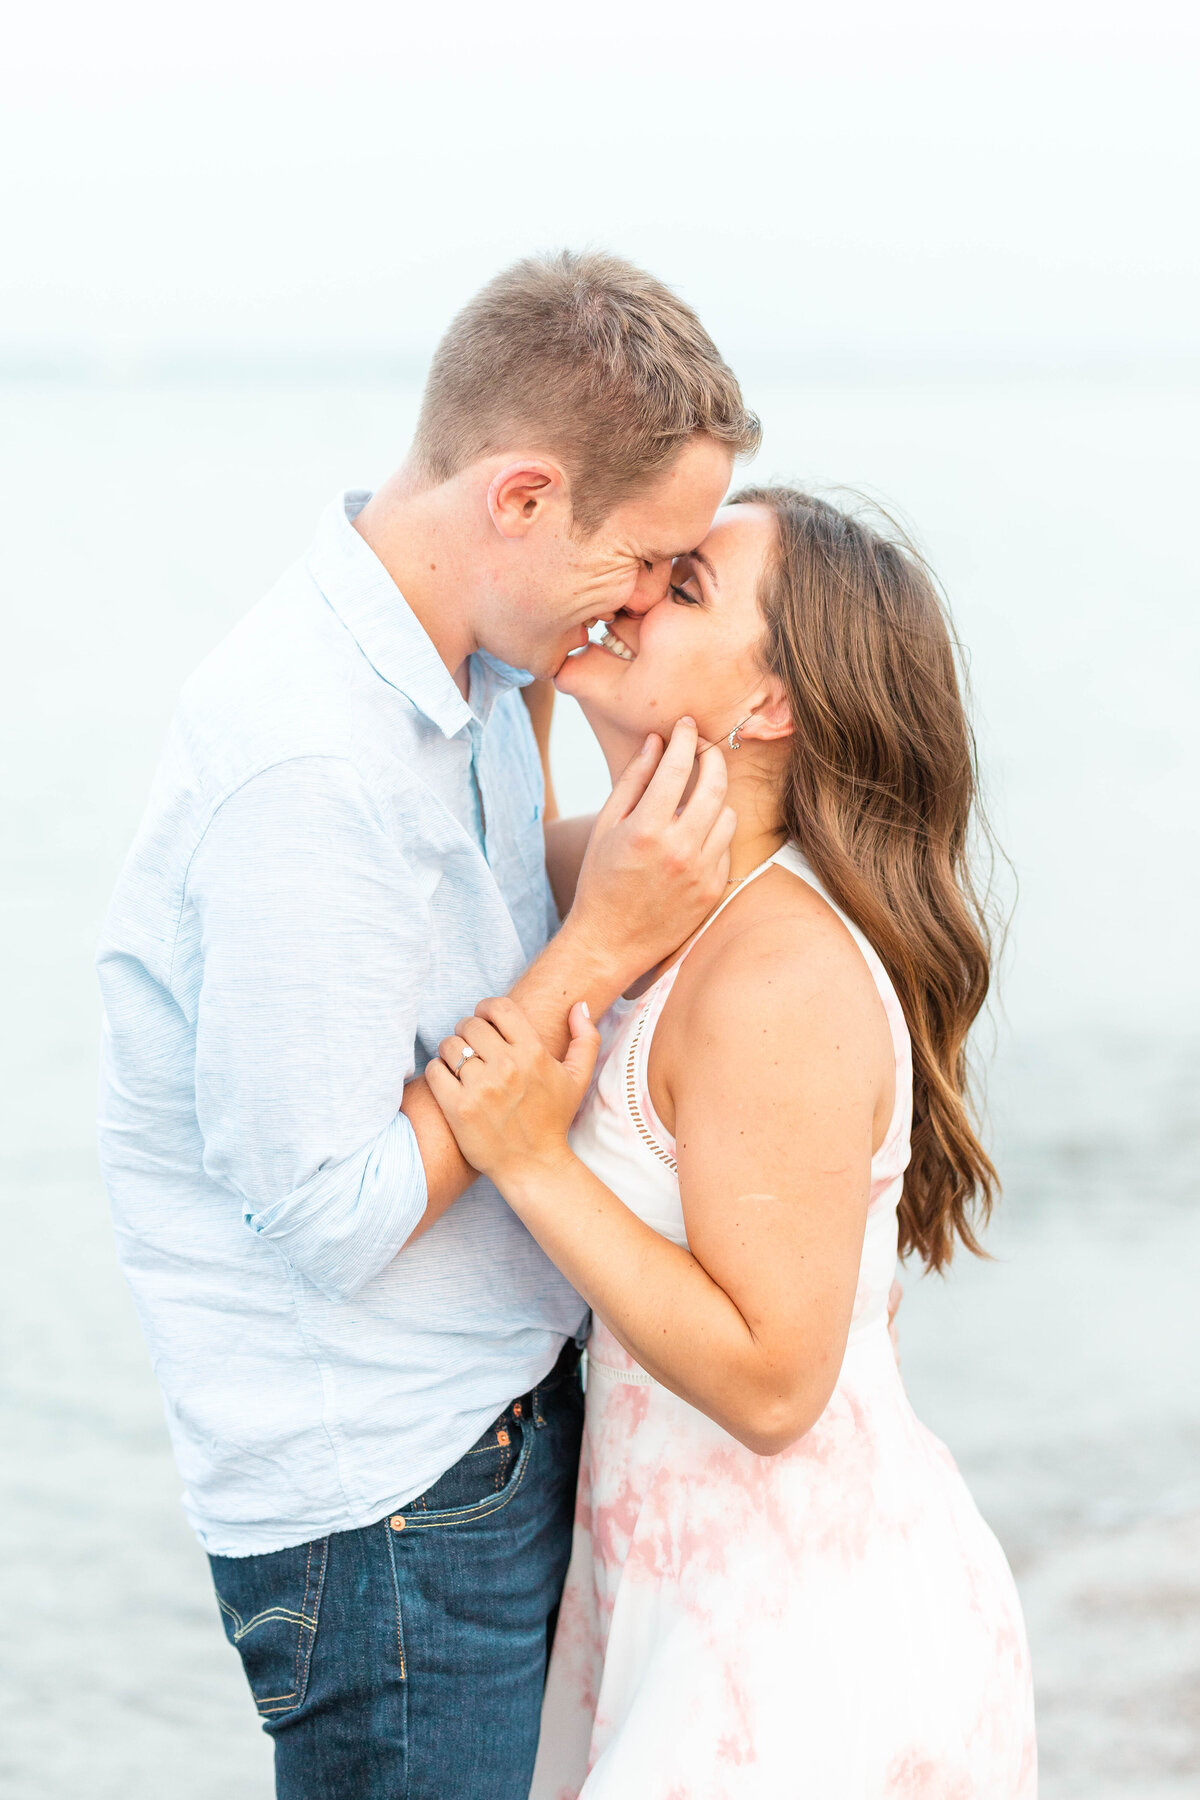 Elle Taylor Photography-Chicago Engagement Photographer60316